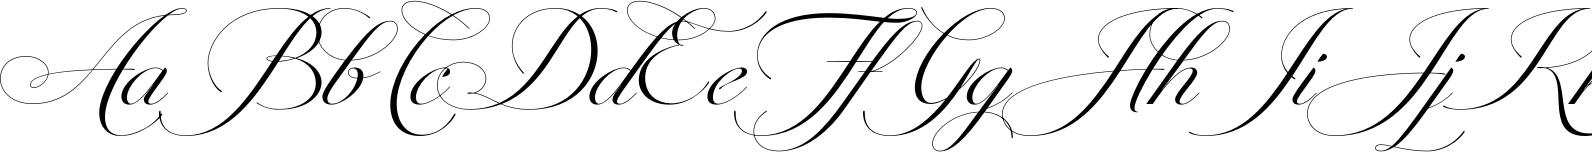 Penna Connected Swashes Font